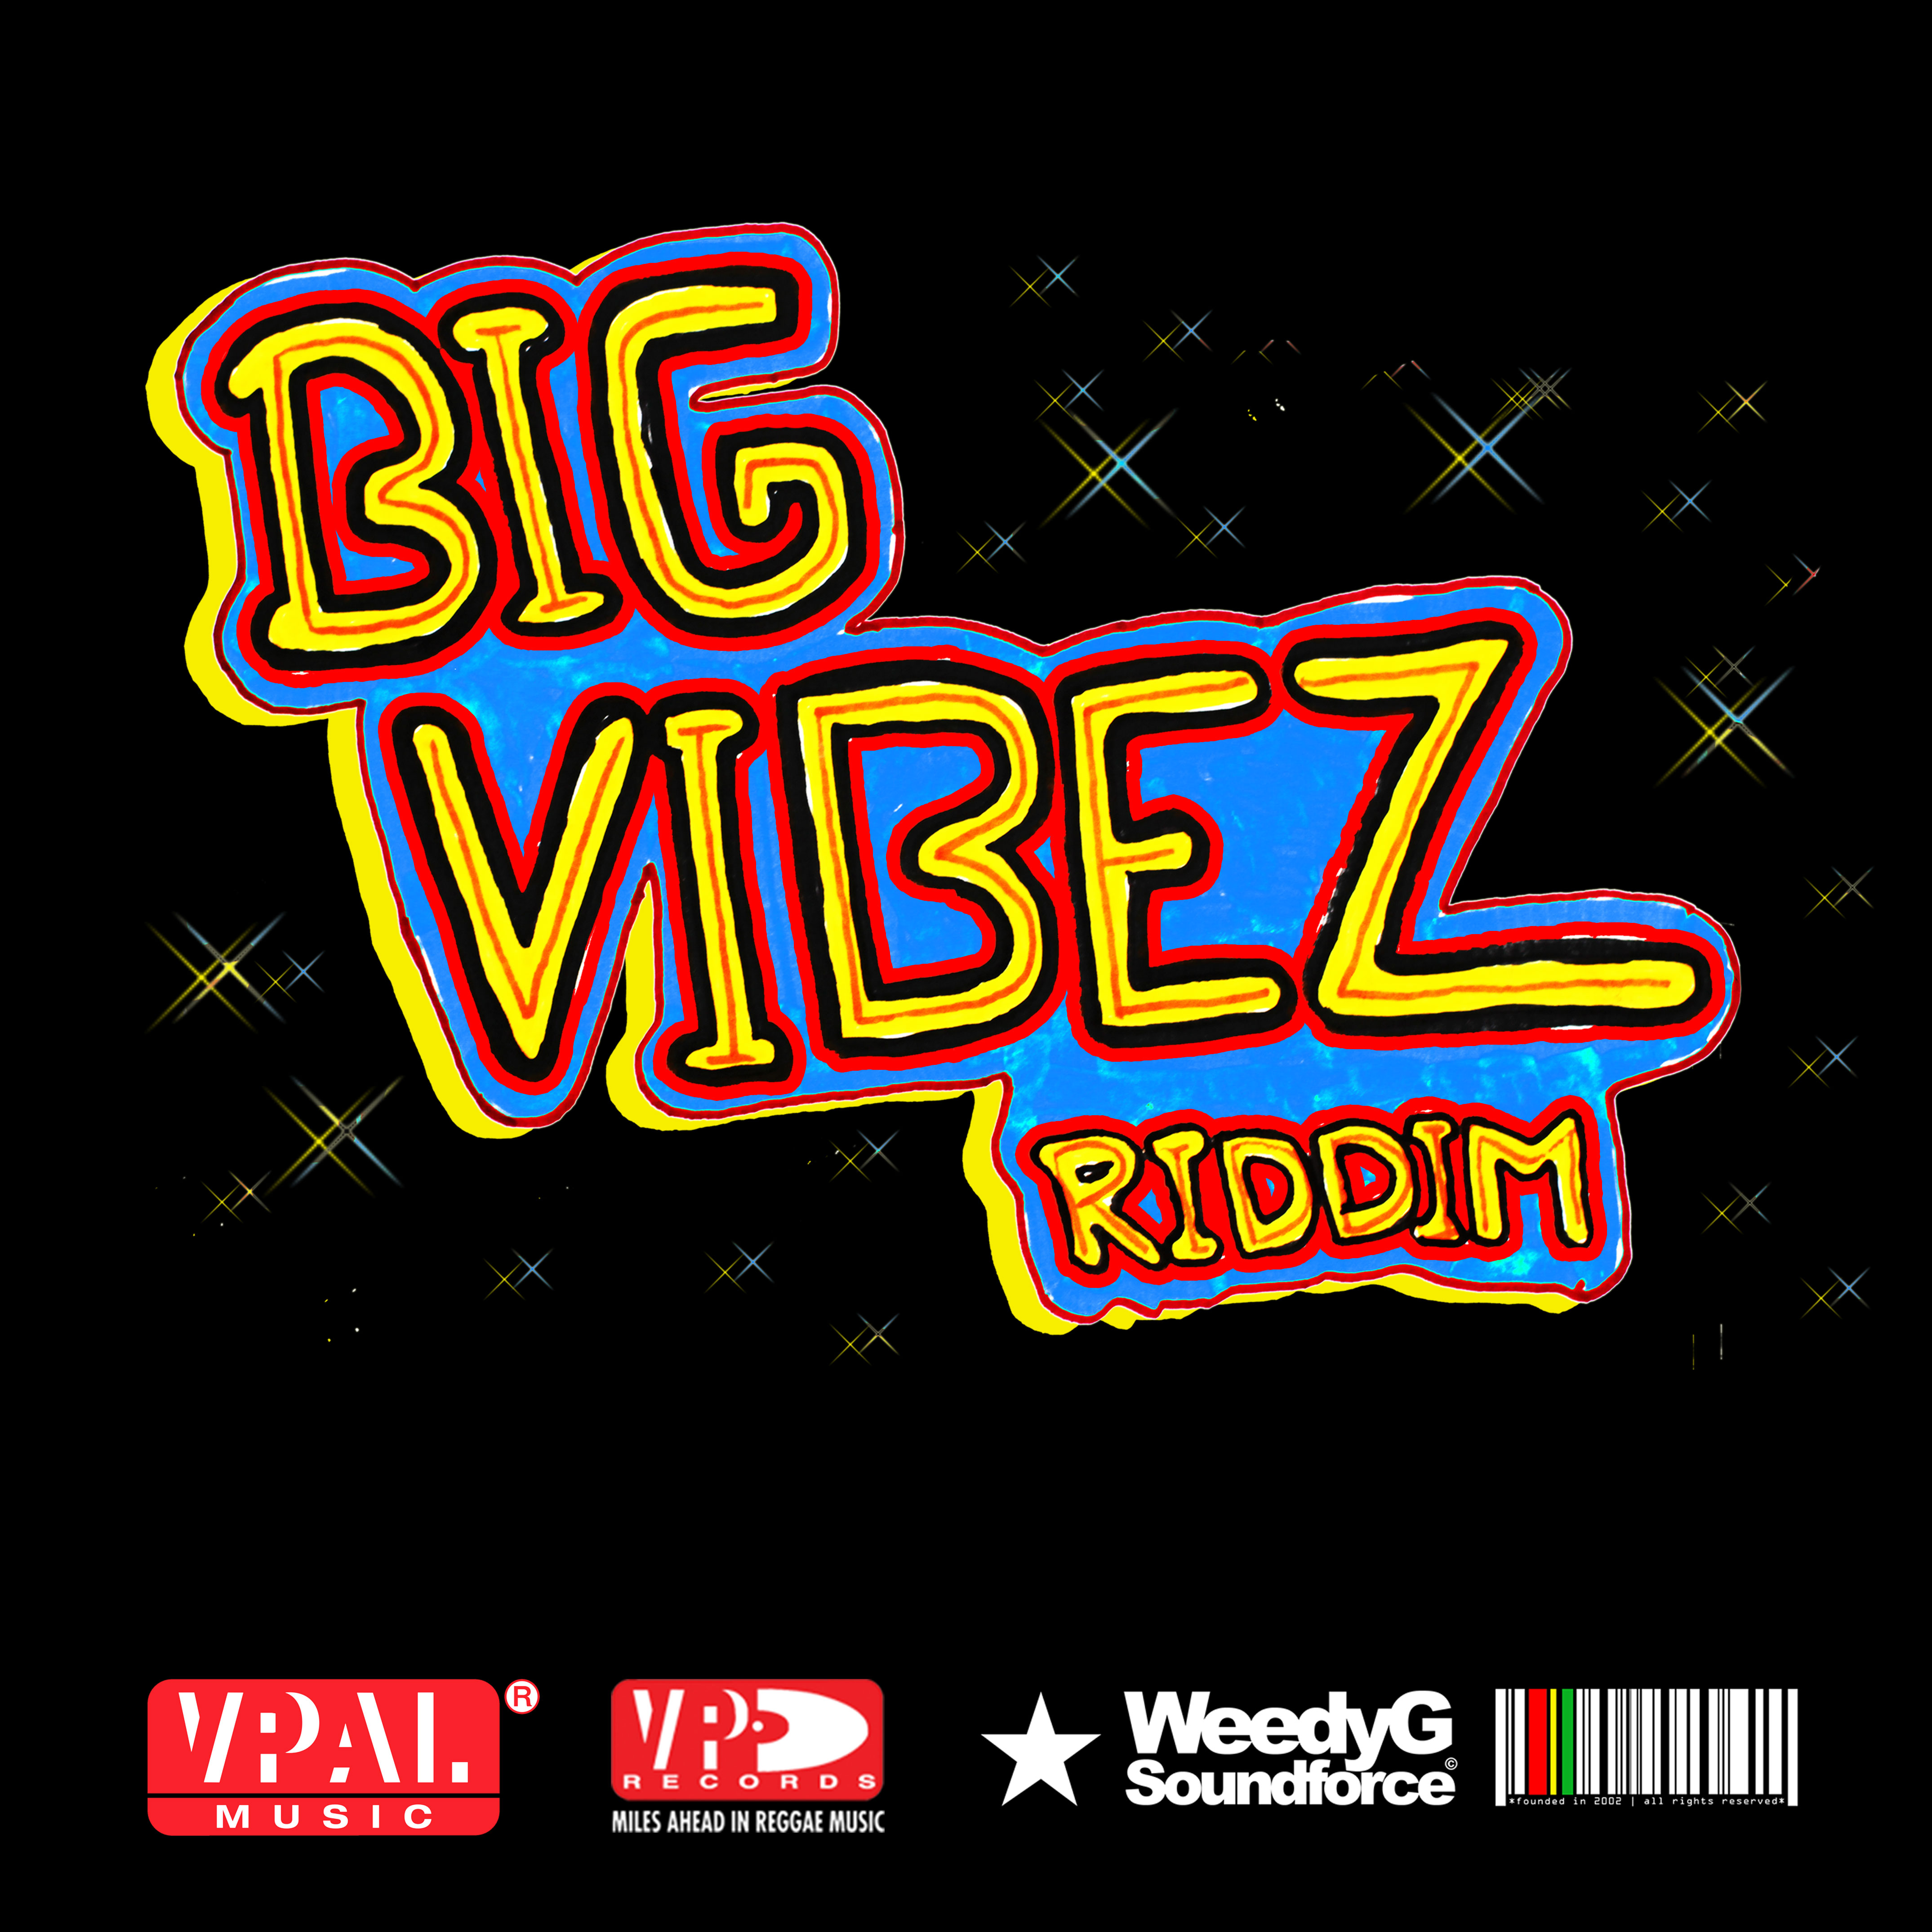 BIG VIBEZ RIDDIM – WEEDY G SOUNDFORCE